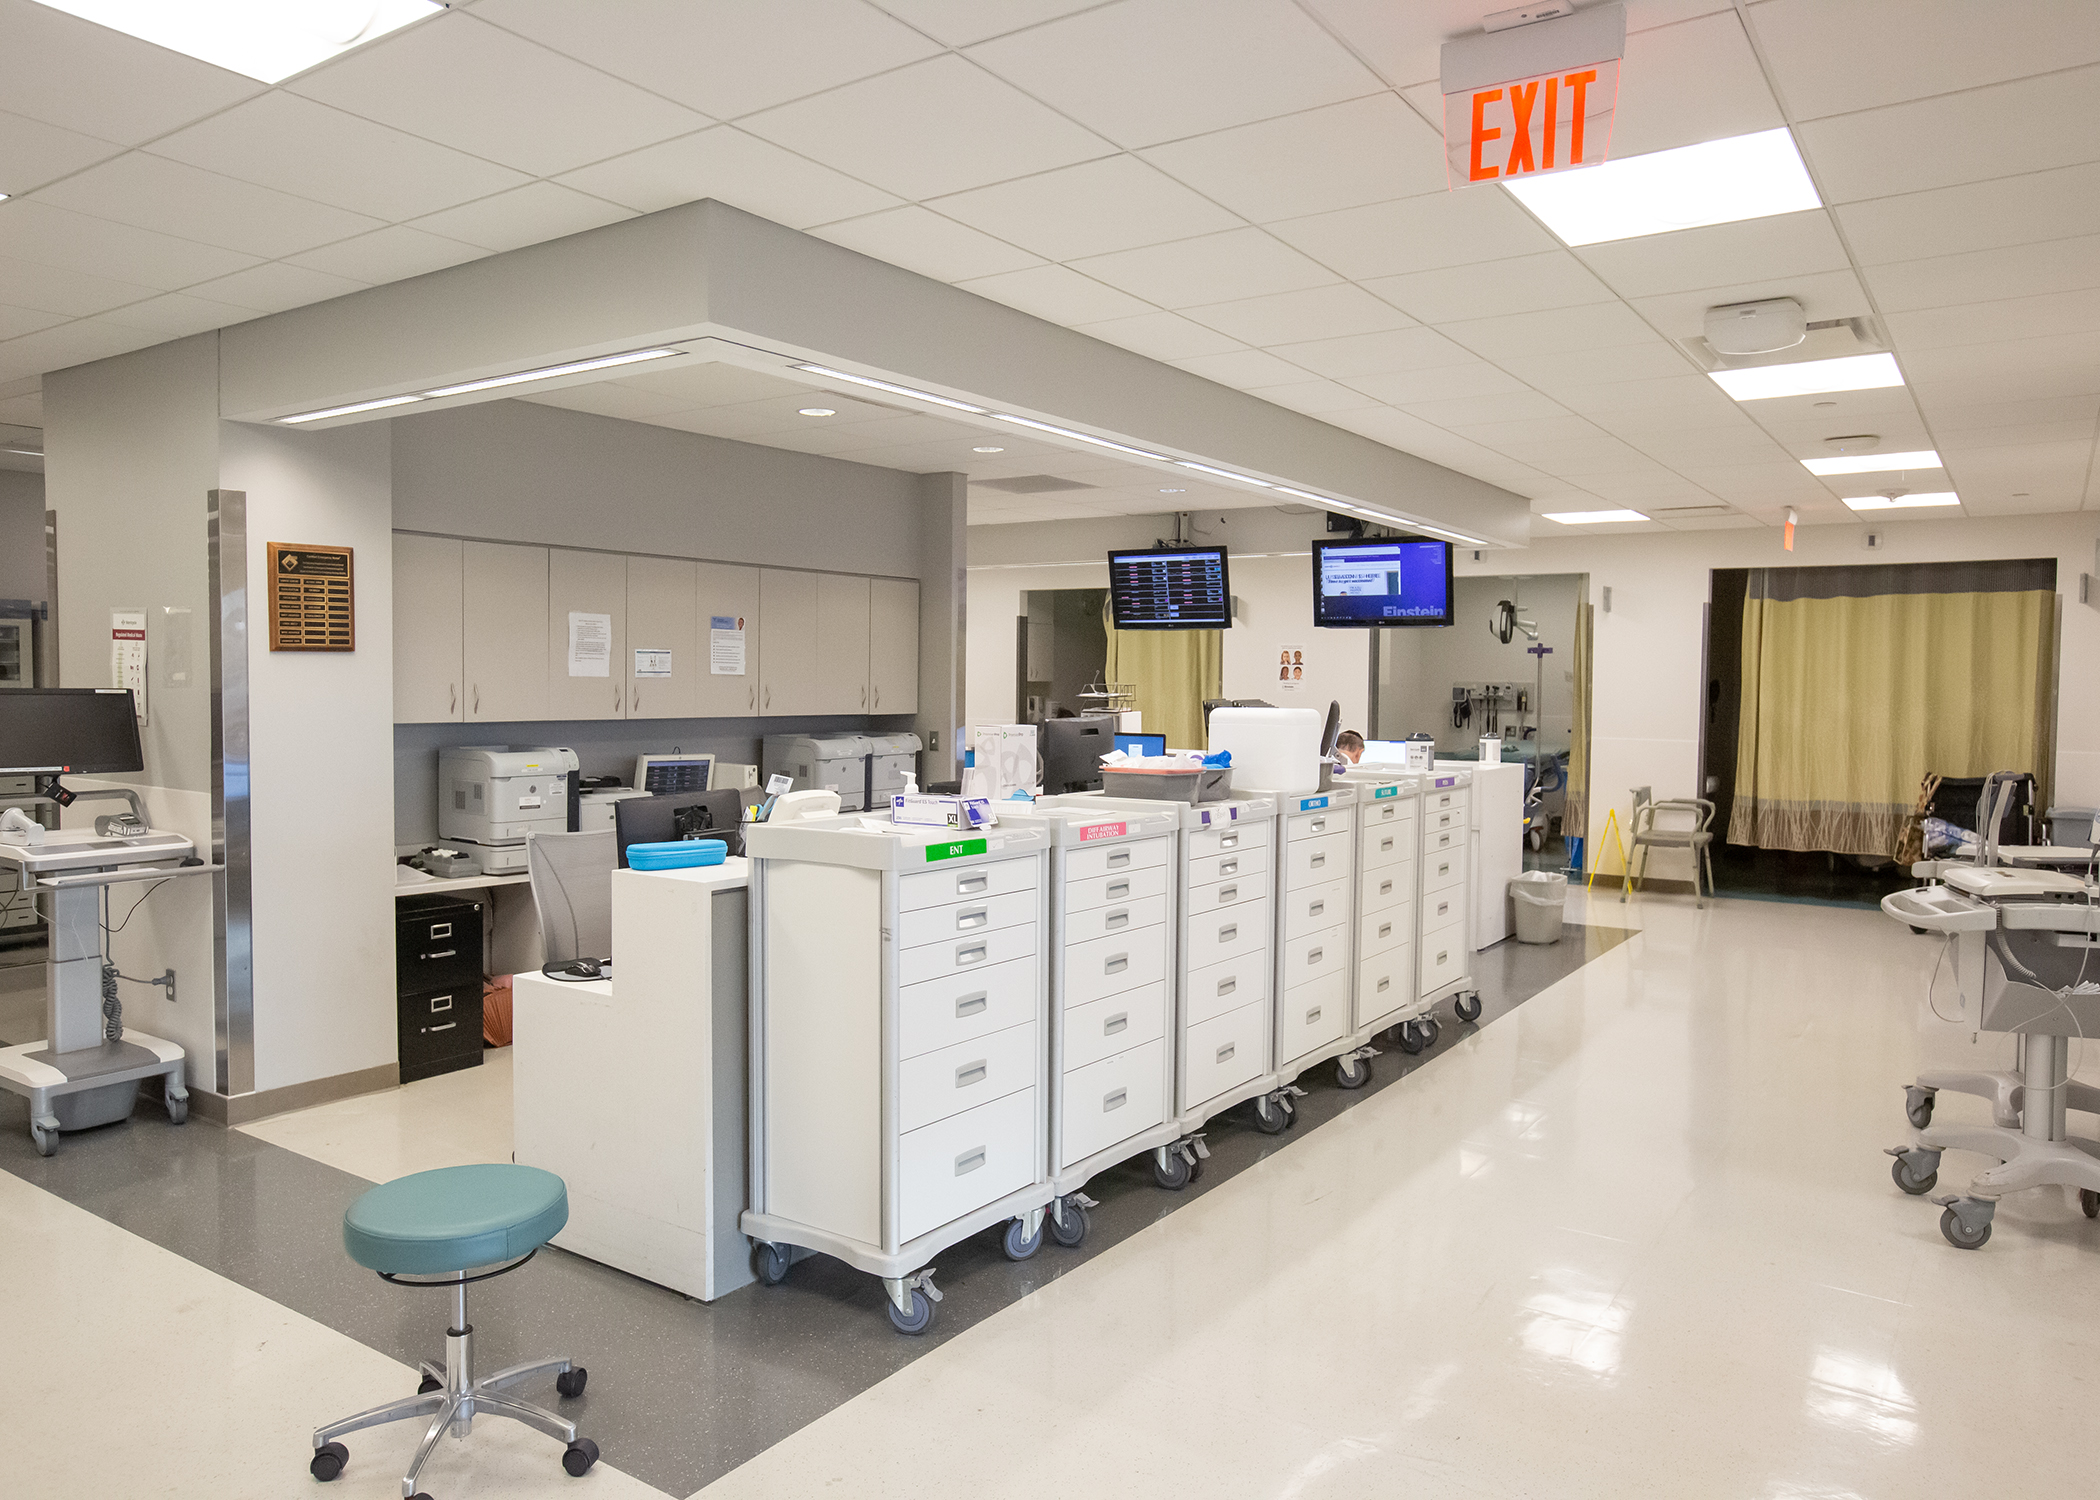 image of emergency department